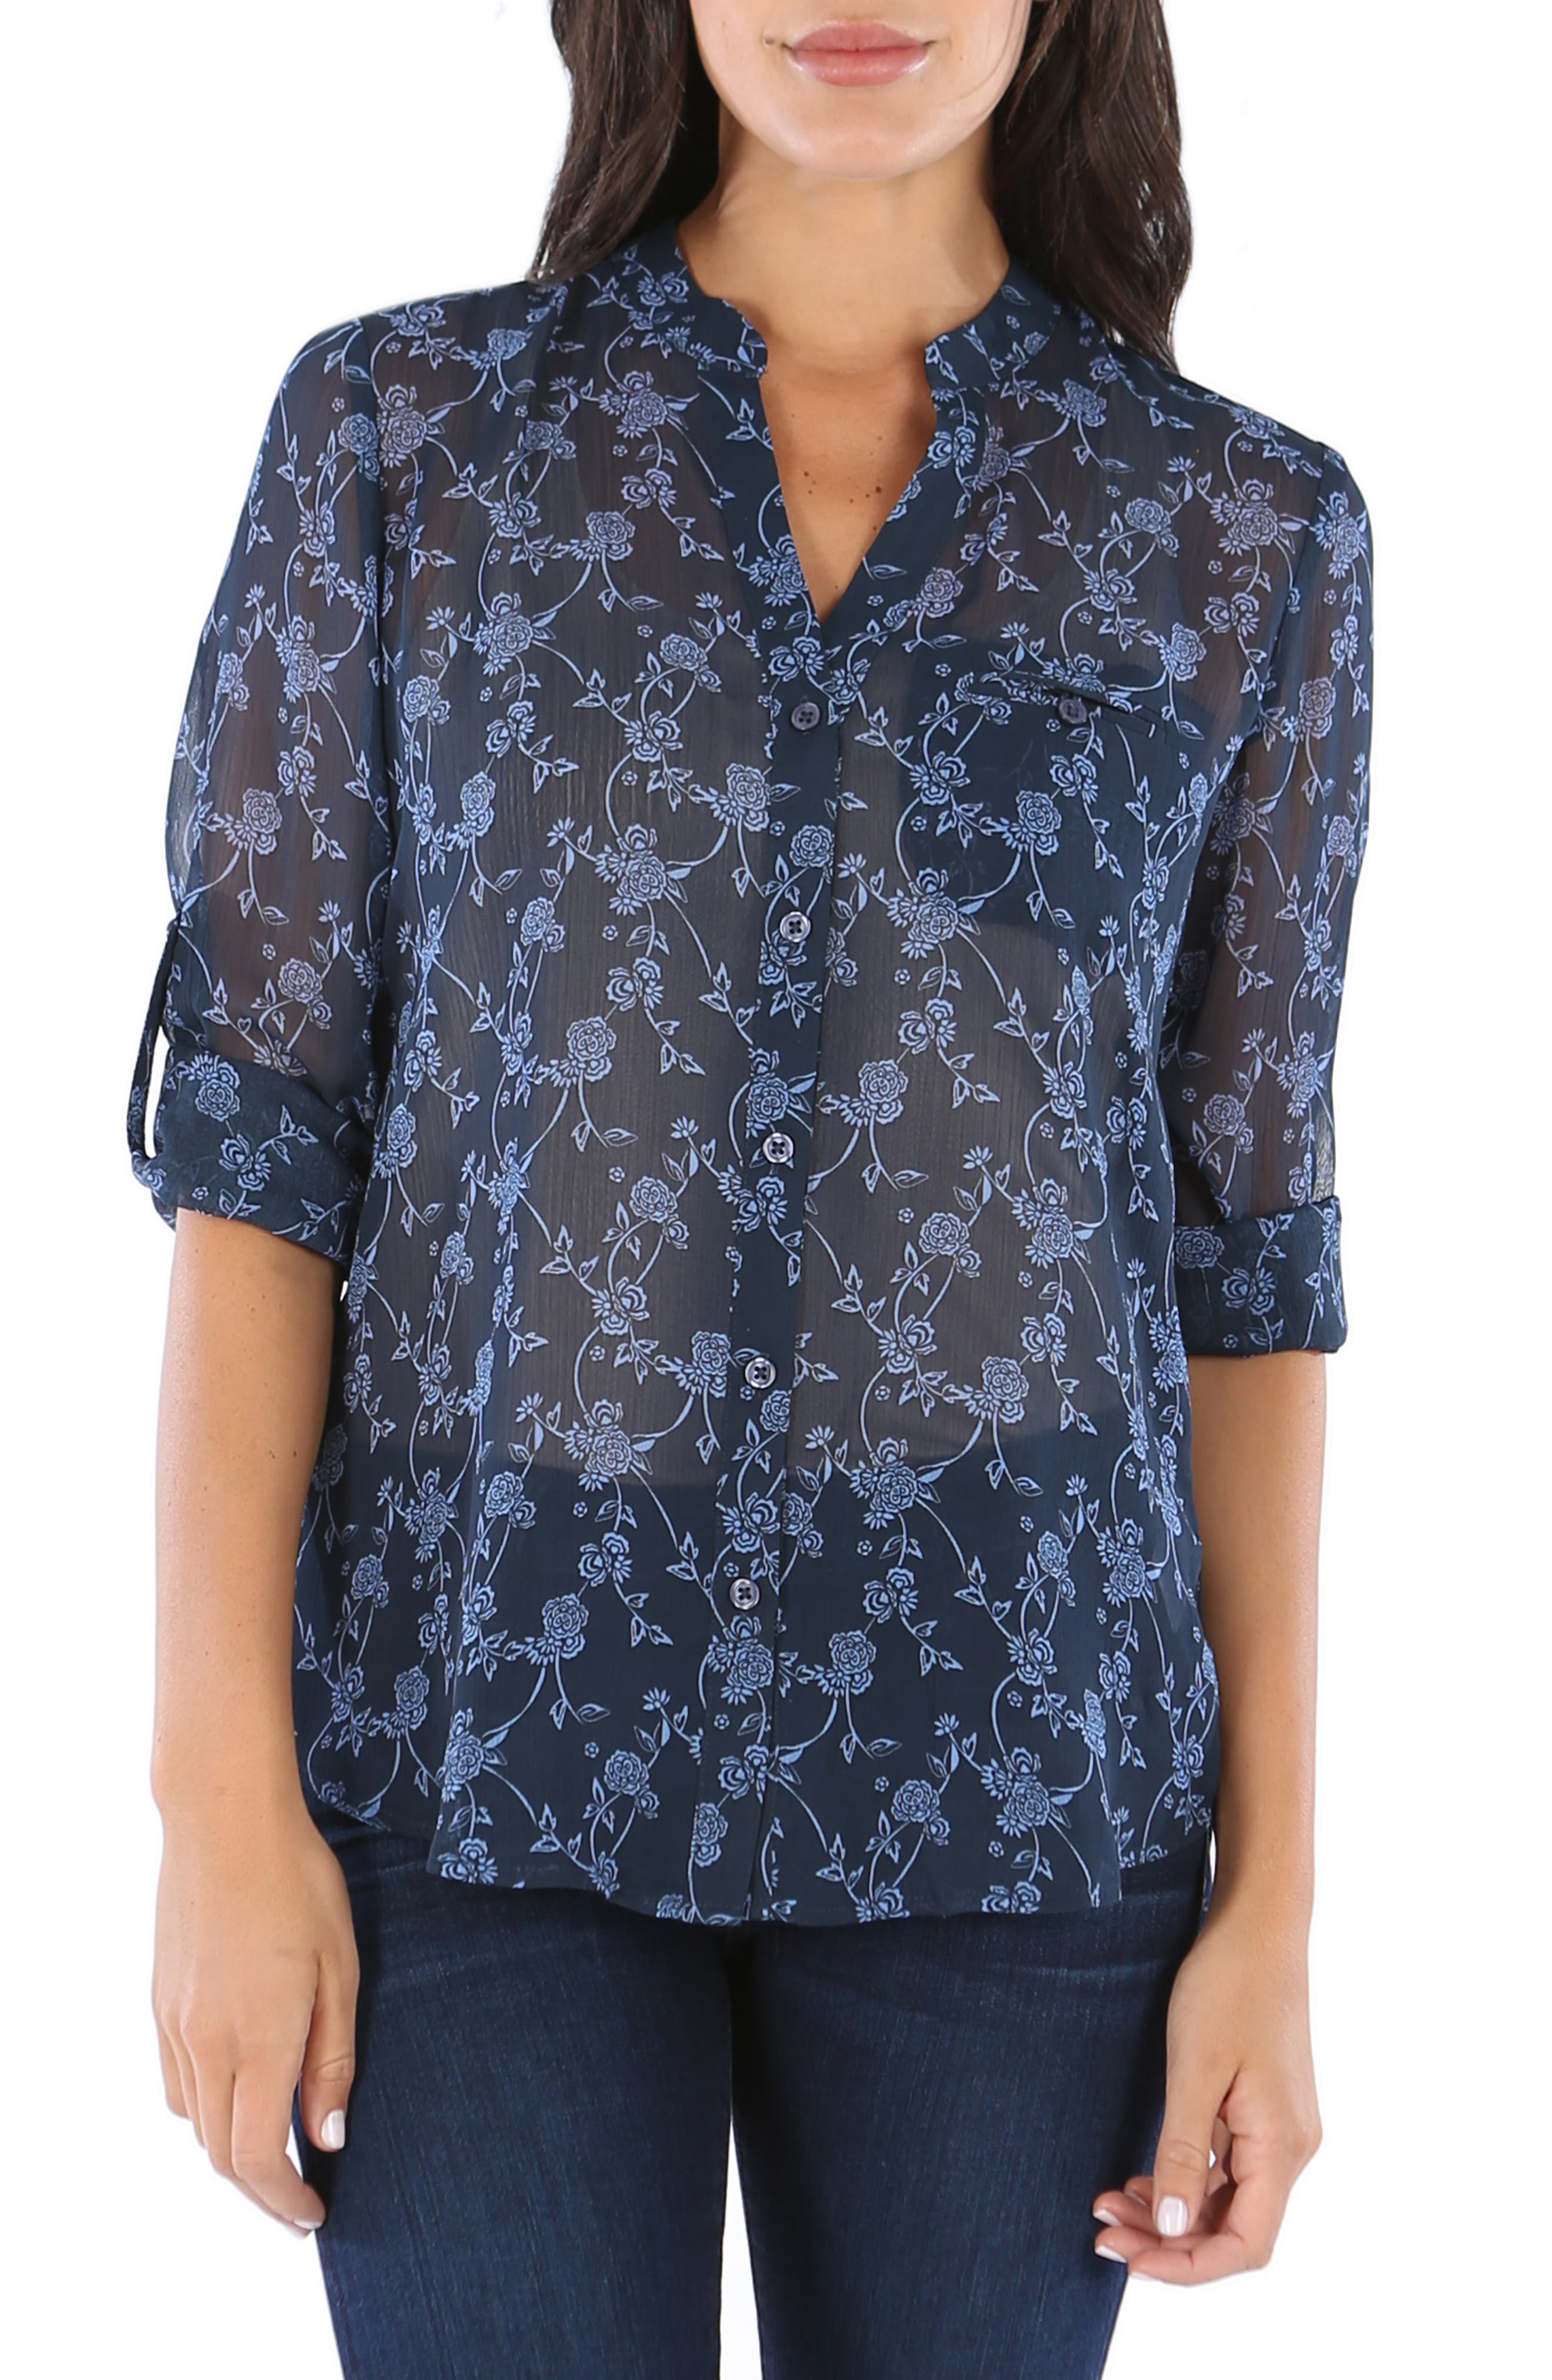 KUT from the the Kloth Jasmine Floral Blouse,                             Main thumbnail 1, color,                             416